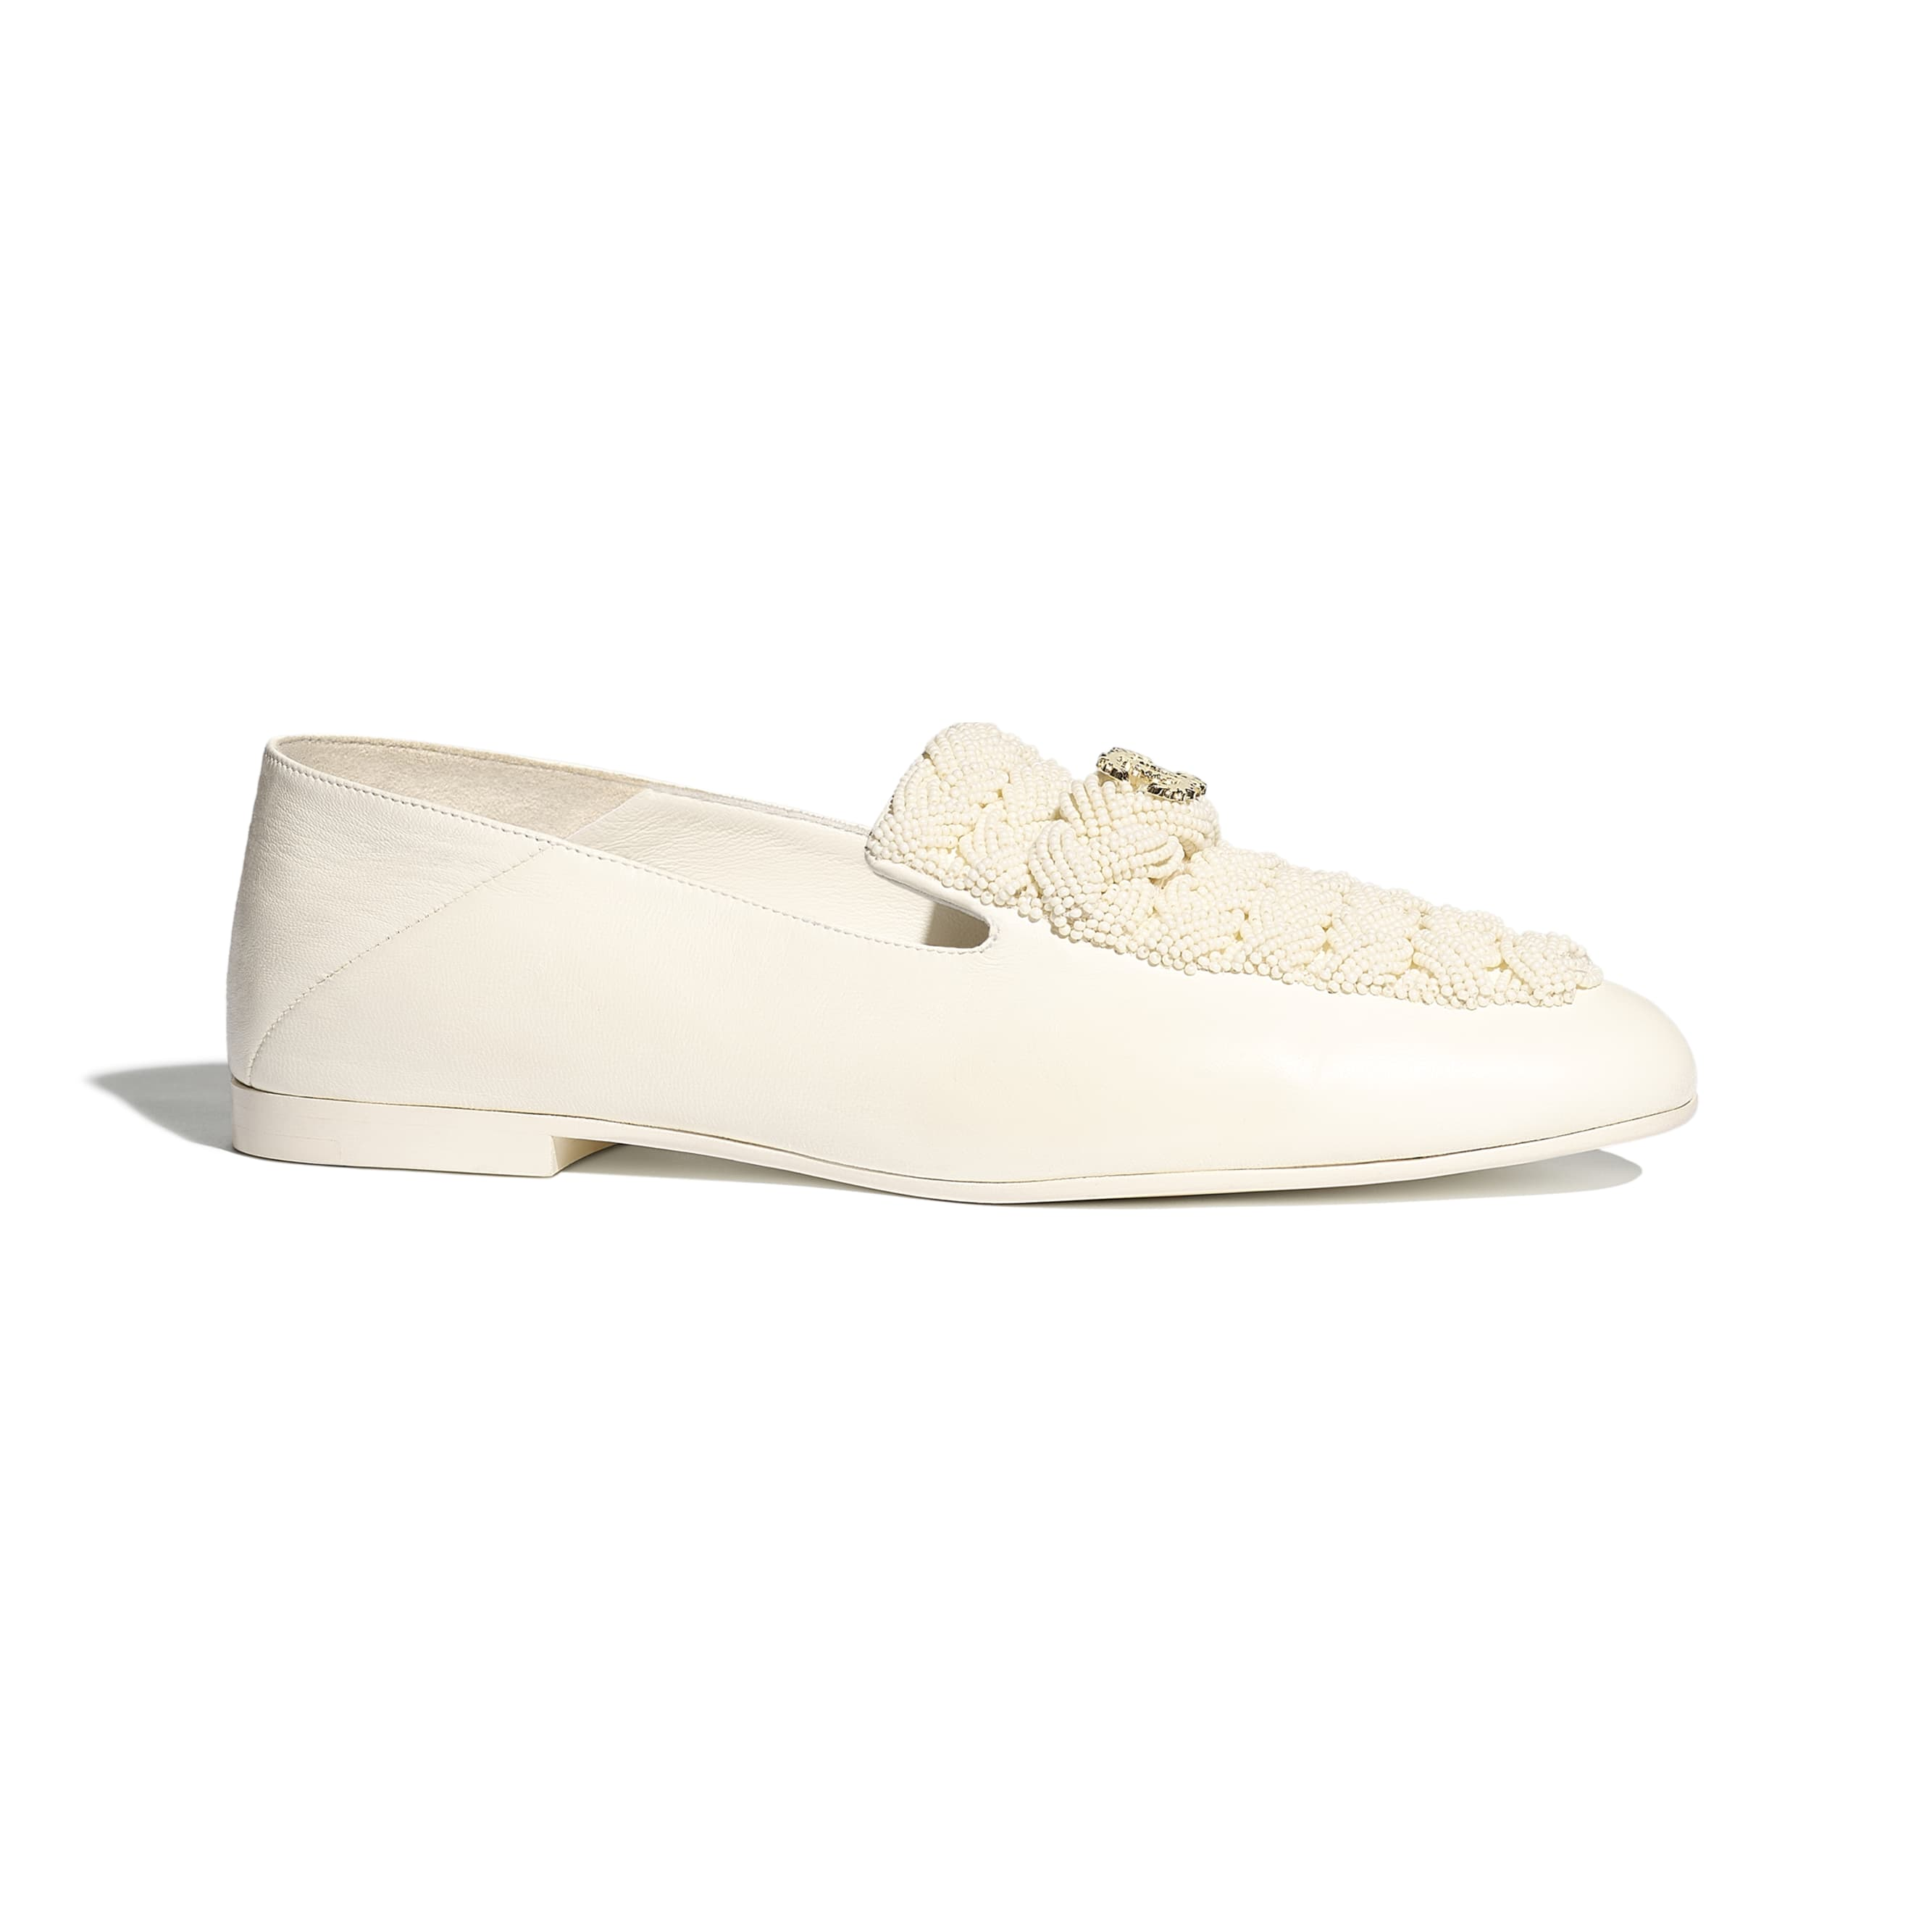 Loafers - Ivory - Pearls & Lambskin - Default view - see standard sized version